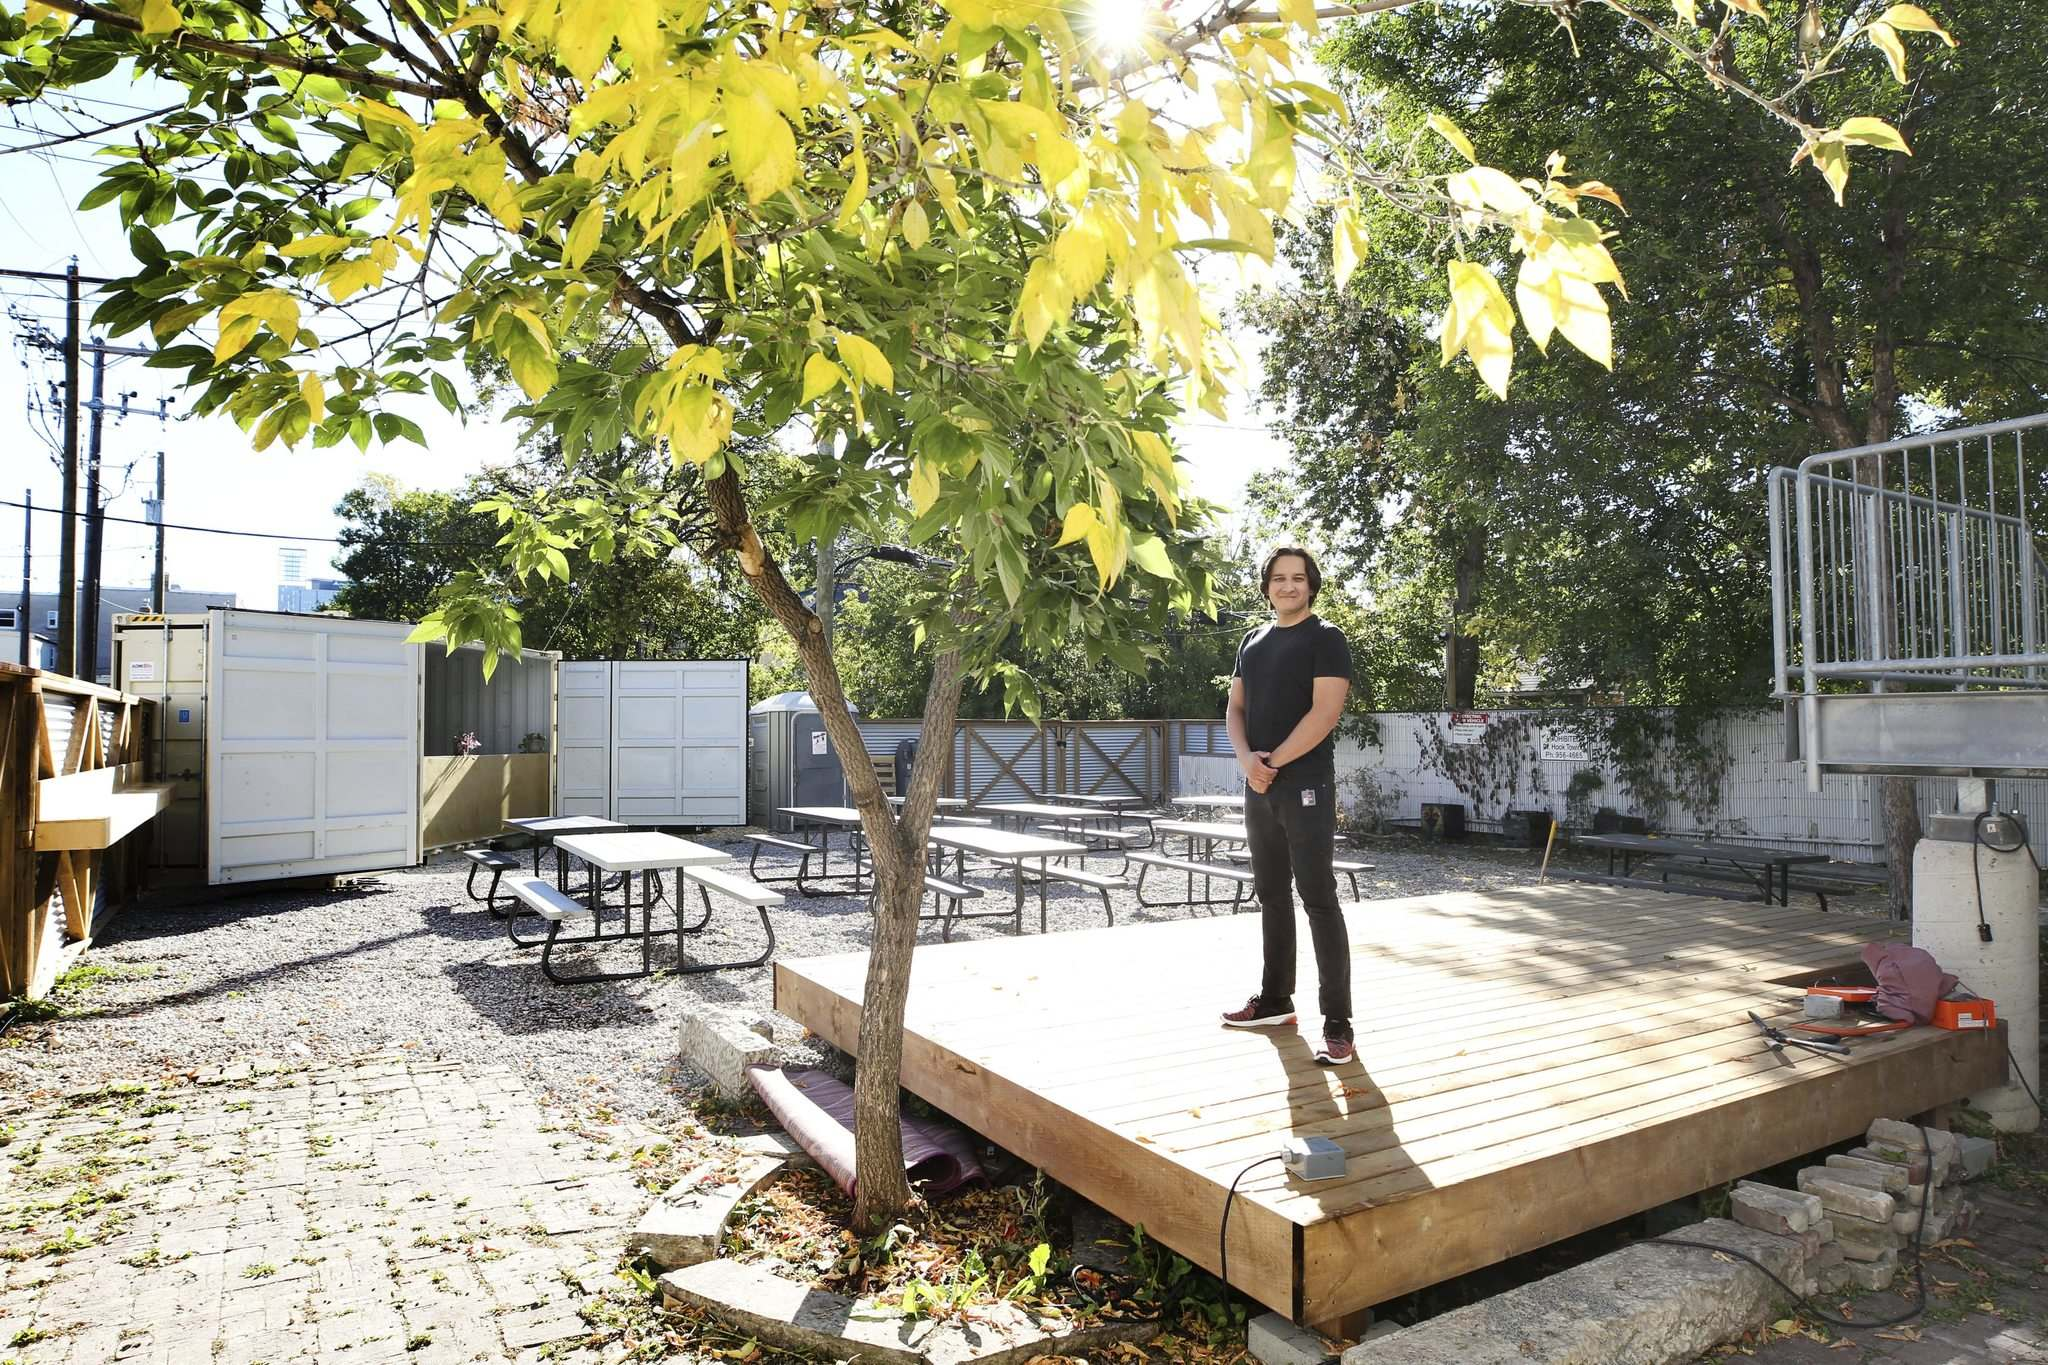 The patio is an effort to connect with people who live and work in the neighbourhood, says artistic director Jorge Requena Ramos. (Ruth Bonneville / Winnipeg Free Press)